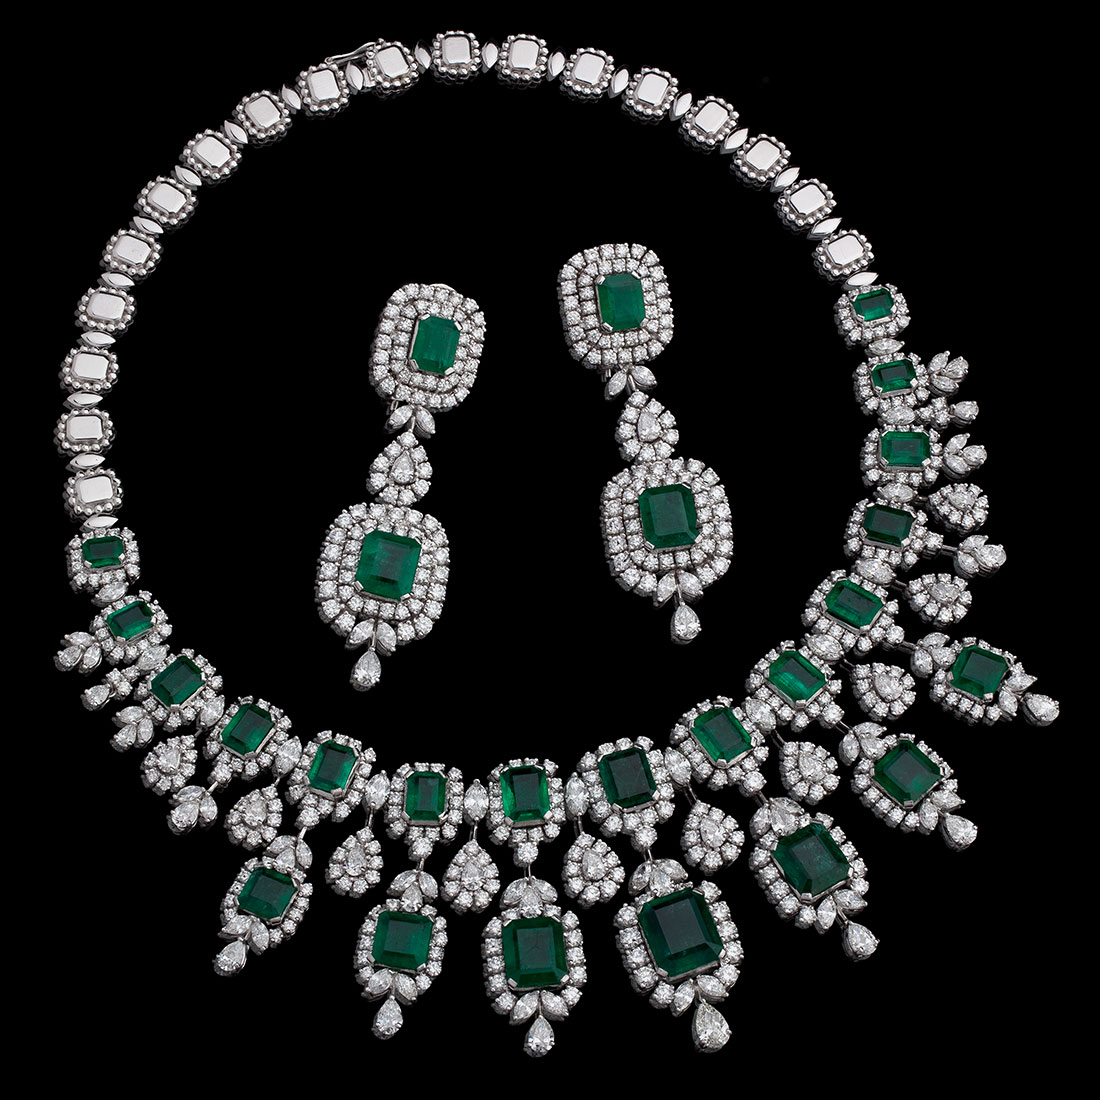 Diamond and Emerald Necklace with Earrings to match.